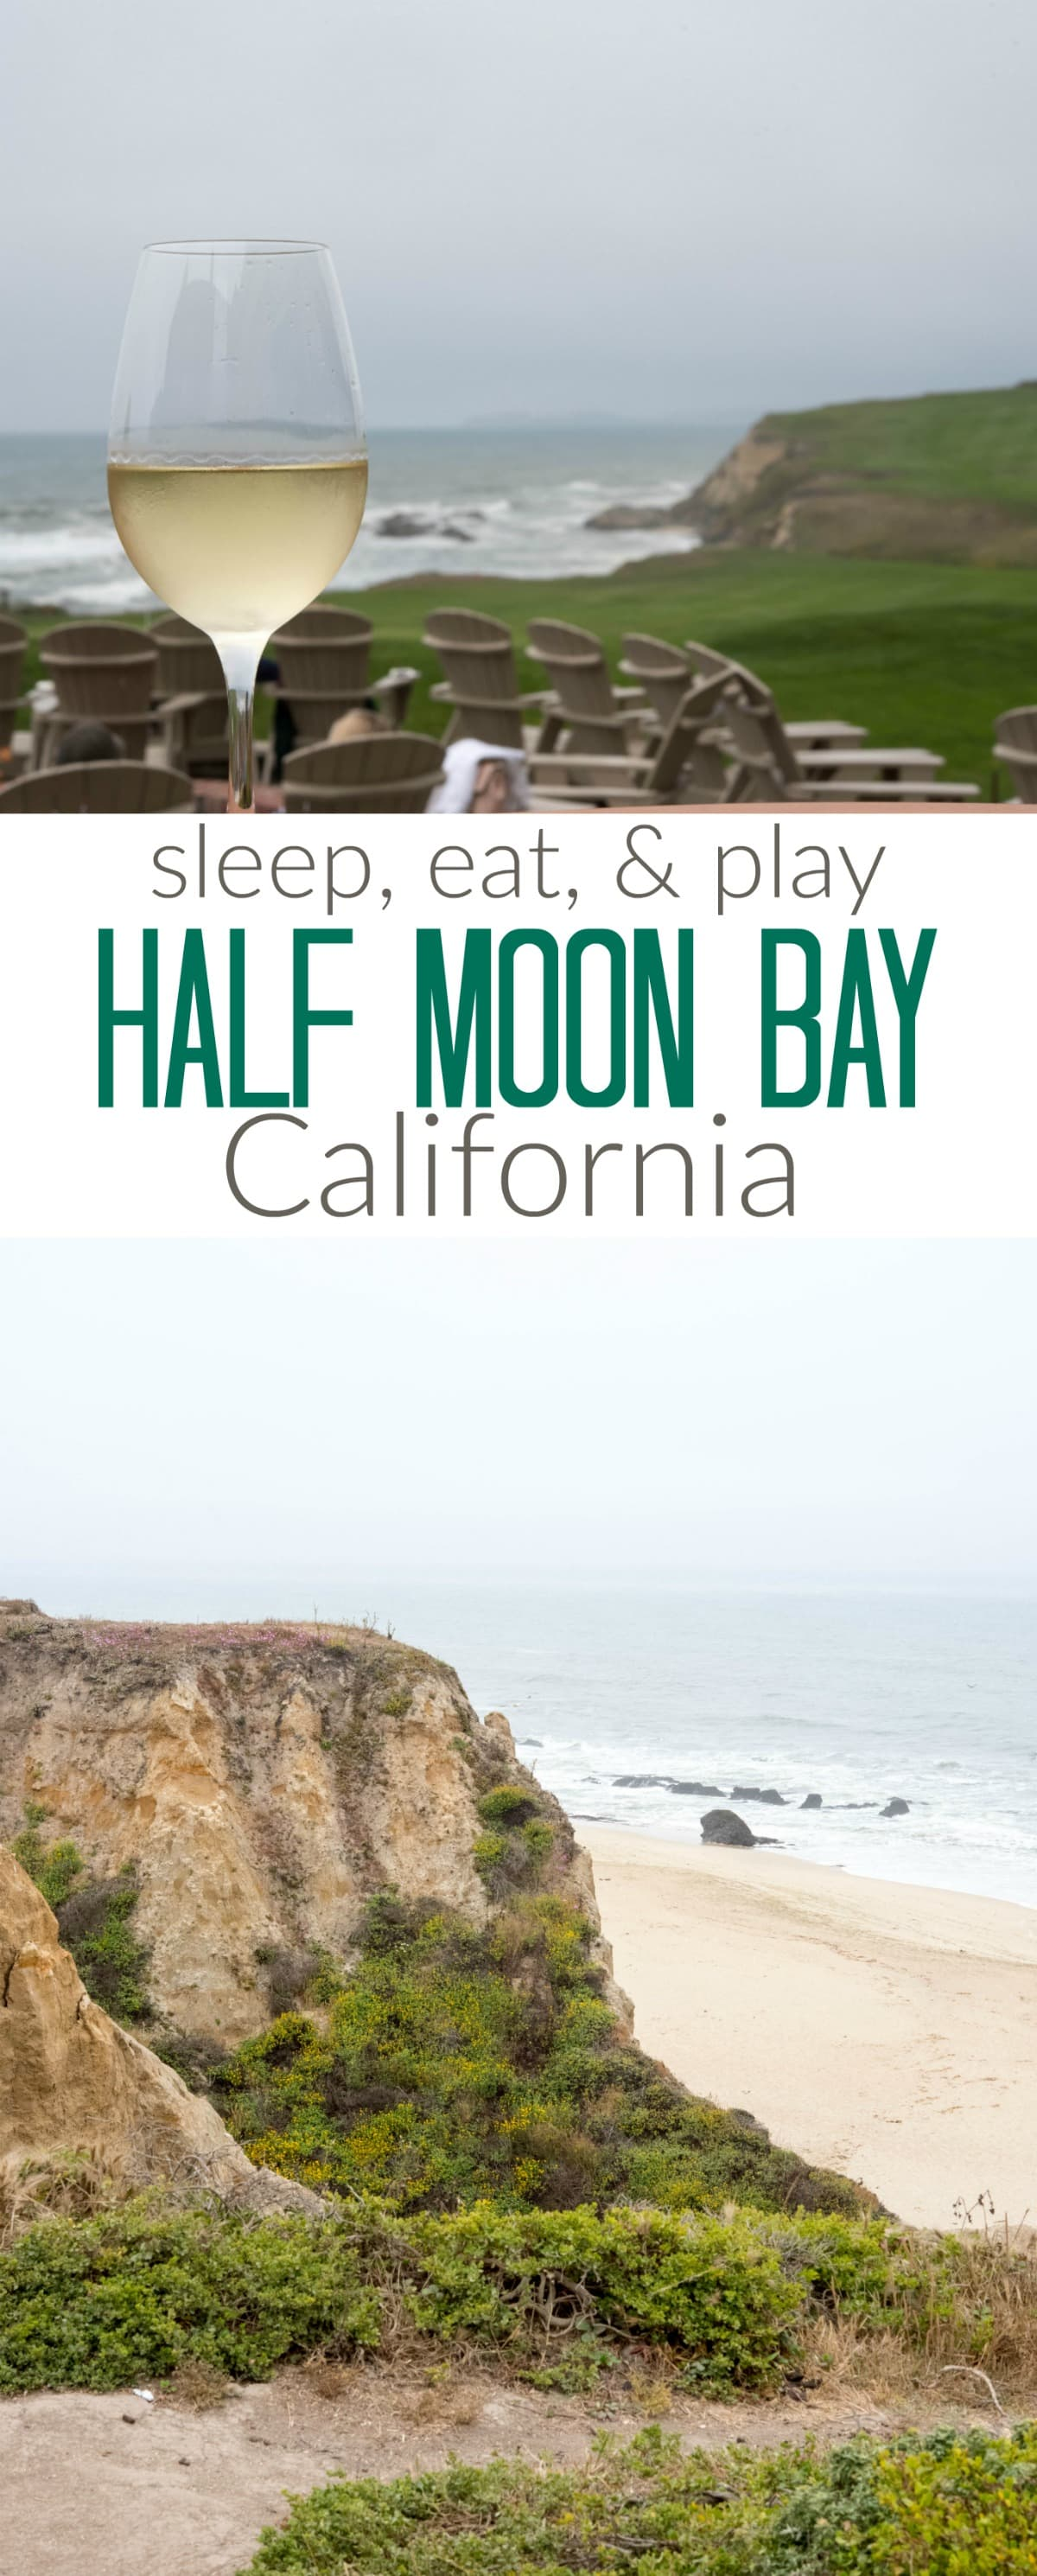 Stay, Eat, and Play in Half Moon Bay, California